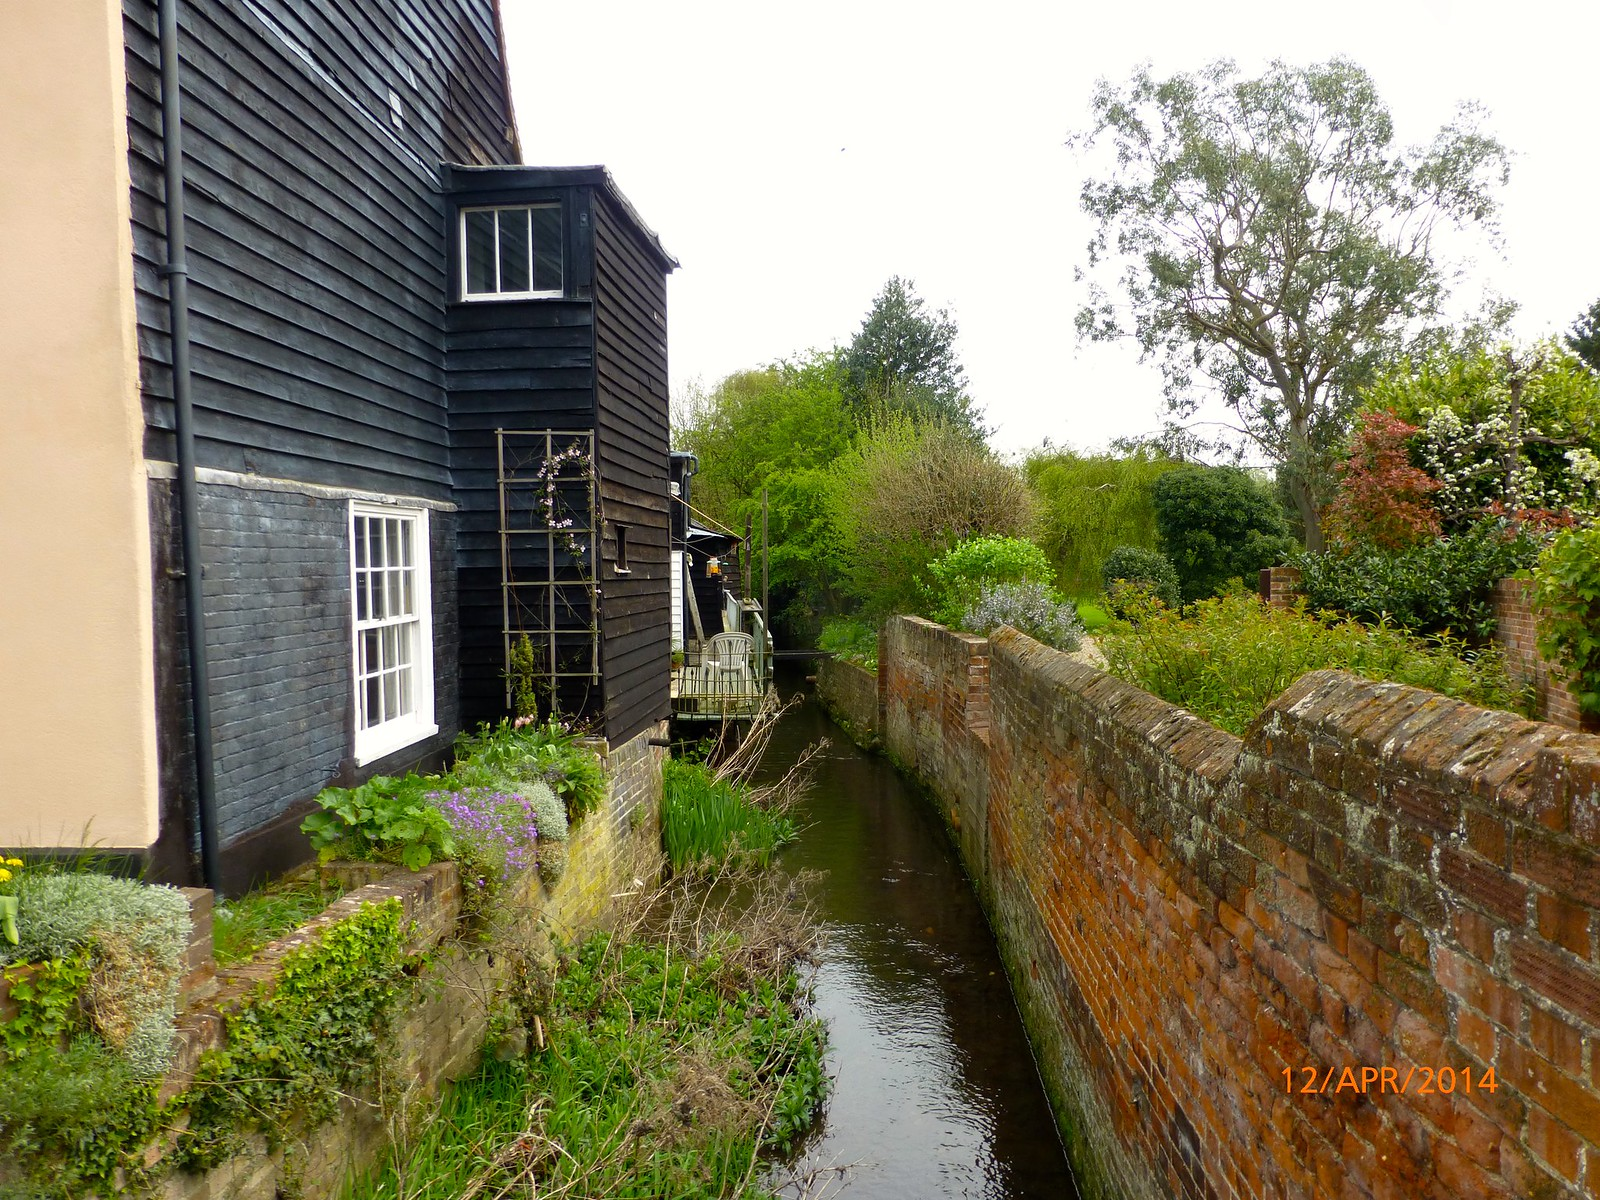 House by stream in Coggeshall SWC Walk 216 Kelvedon Circular